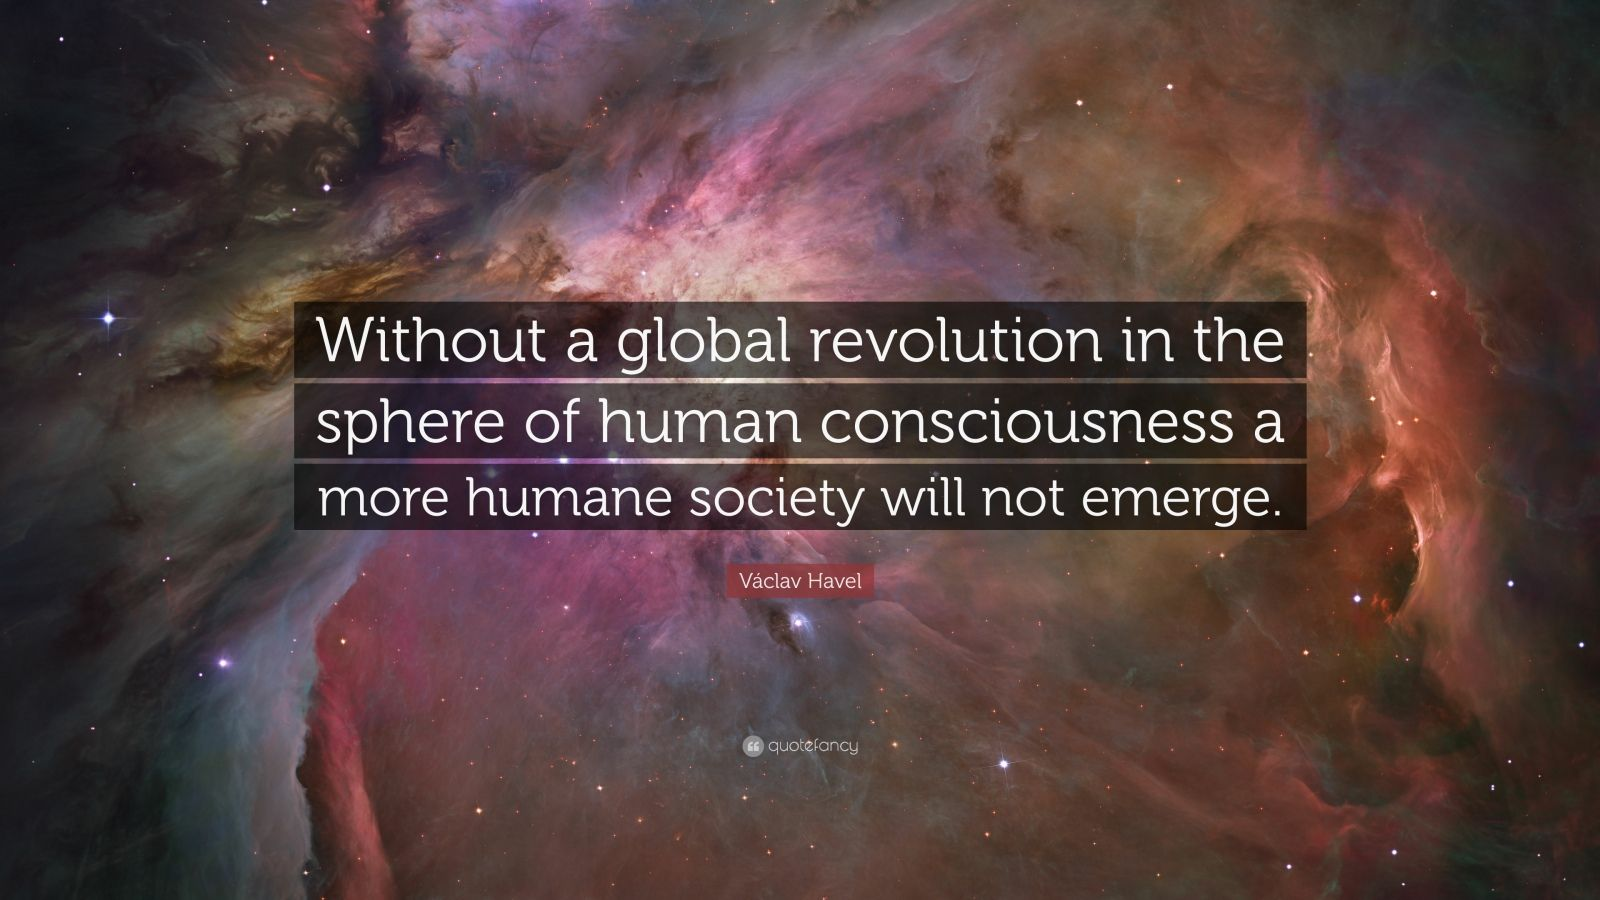 """Václav Havel Quote: """"Without a global revolution in the sphere of human consciousness a more humane society will not emerge."""""""